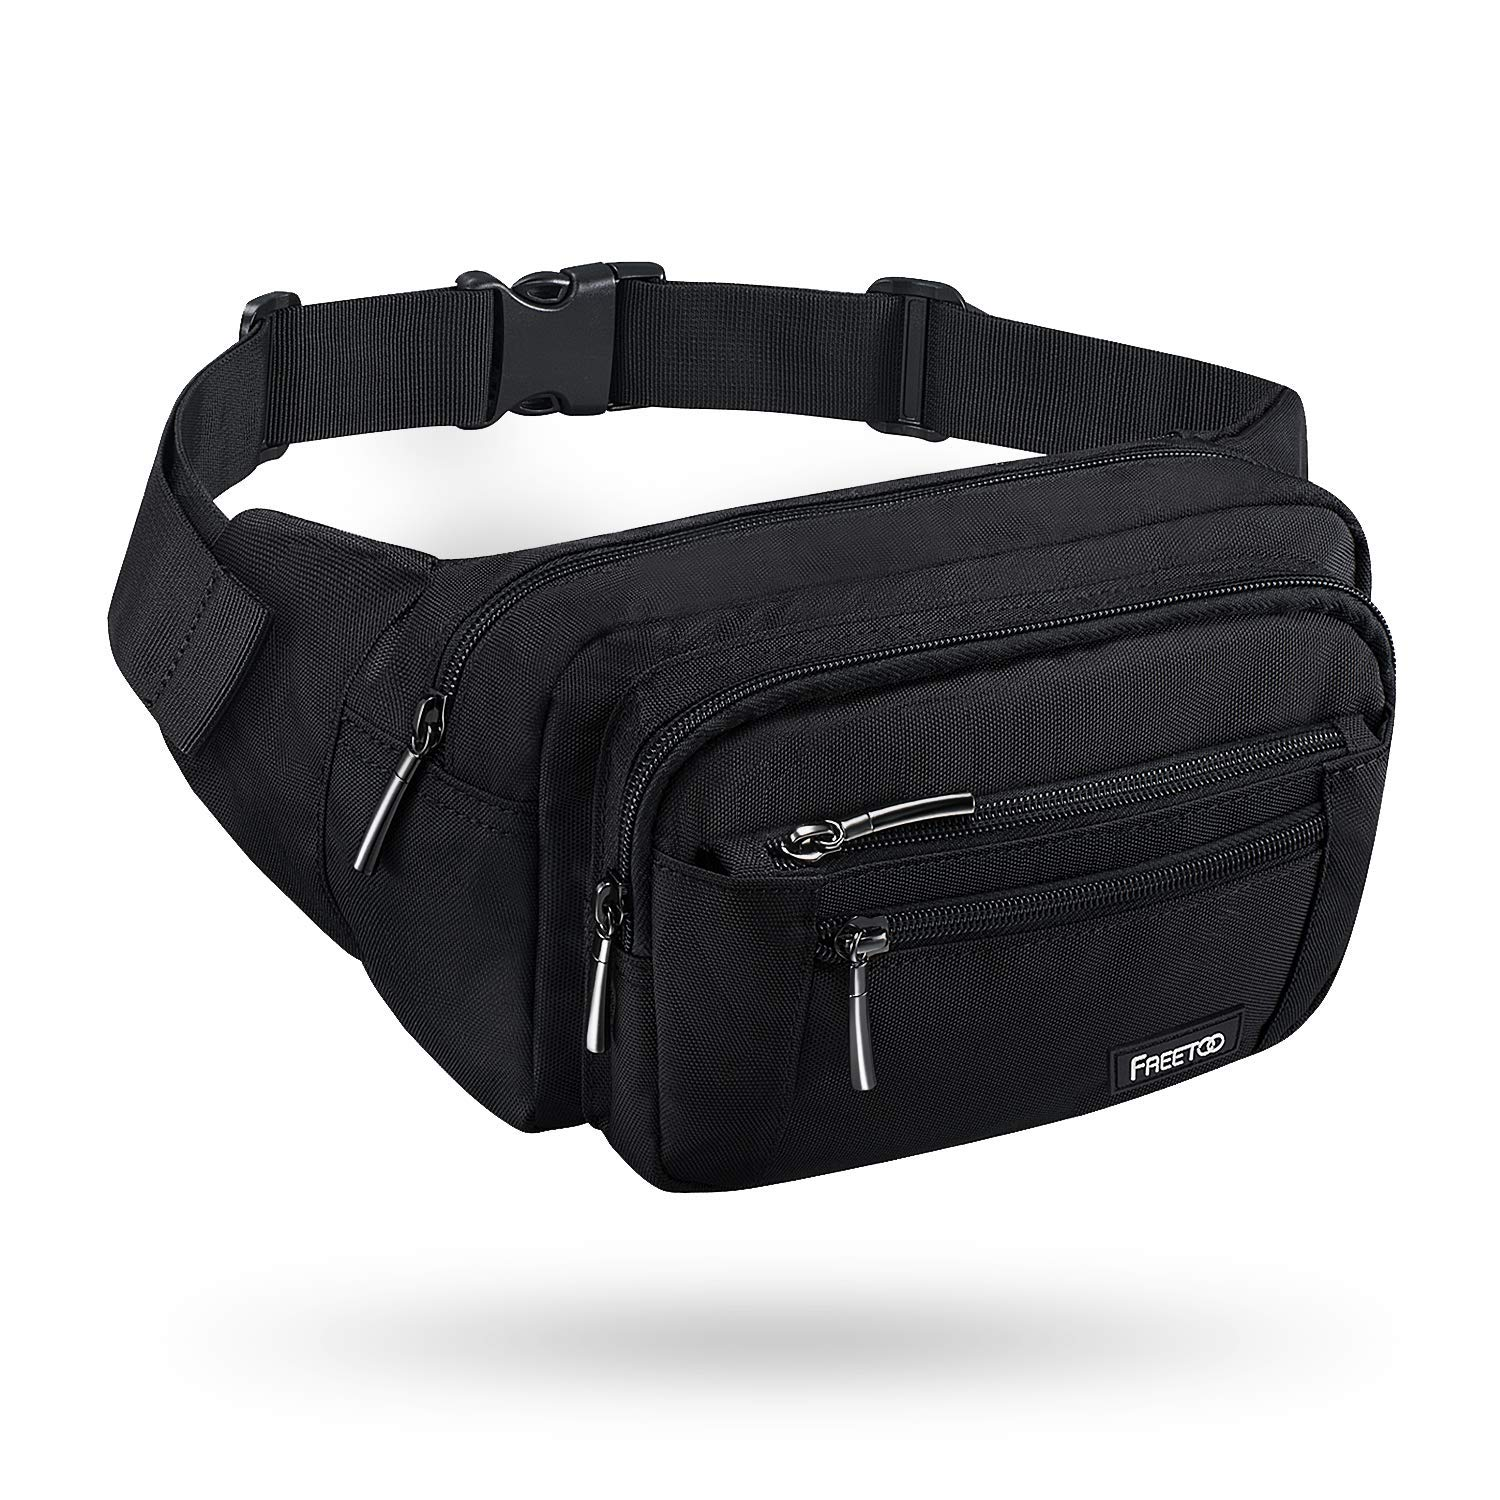 2f97e838a18b4 FREETOO Waist Pack Bag Fanny Pack for Men&Women Hip Bum Bag with Adjustable  Strap for Outdoors Workout Traveling Casual Running Hiking Cycling